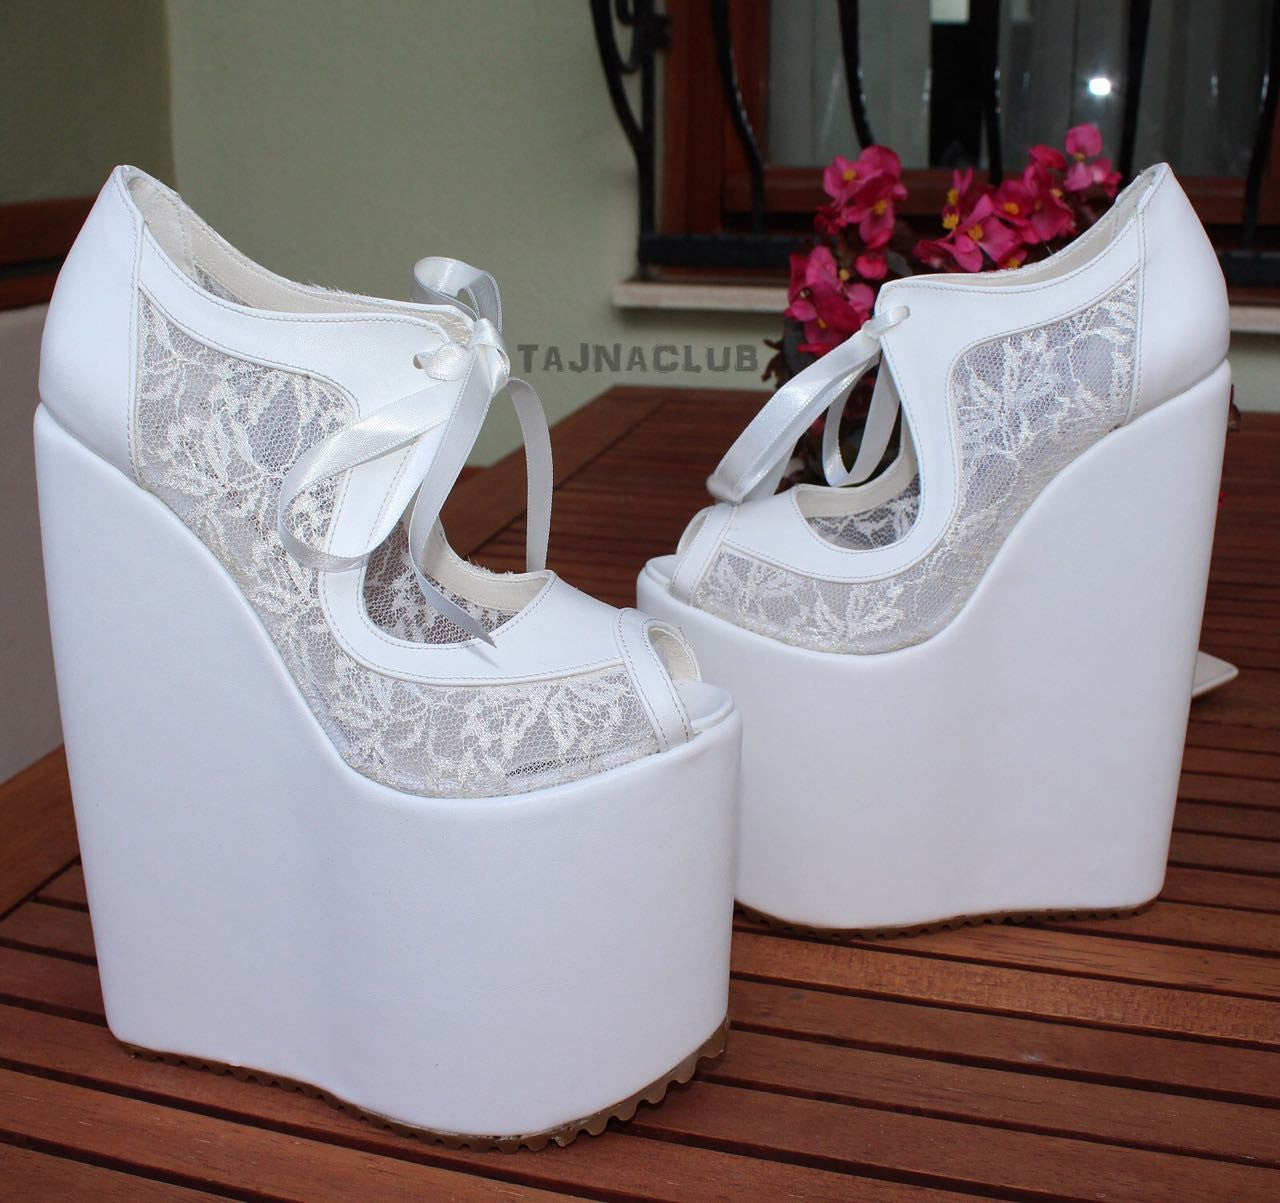 8478a0817f Wedding Shoes Laceup White Wedge Heel Platform High Heels Shoes ...